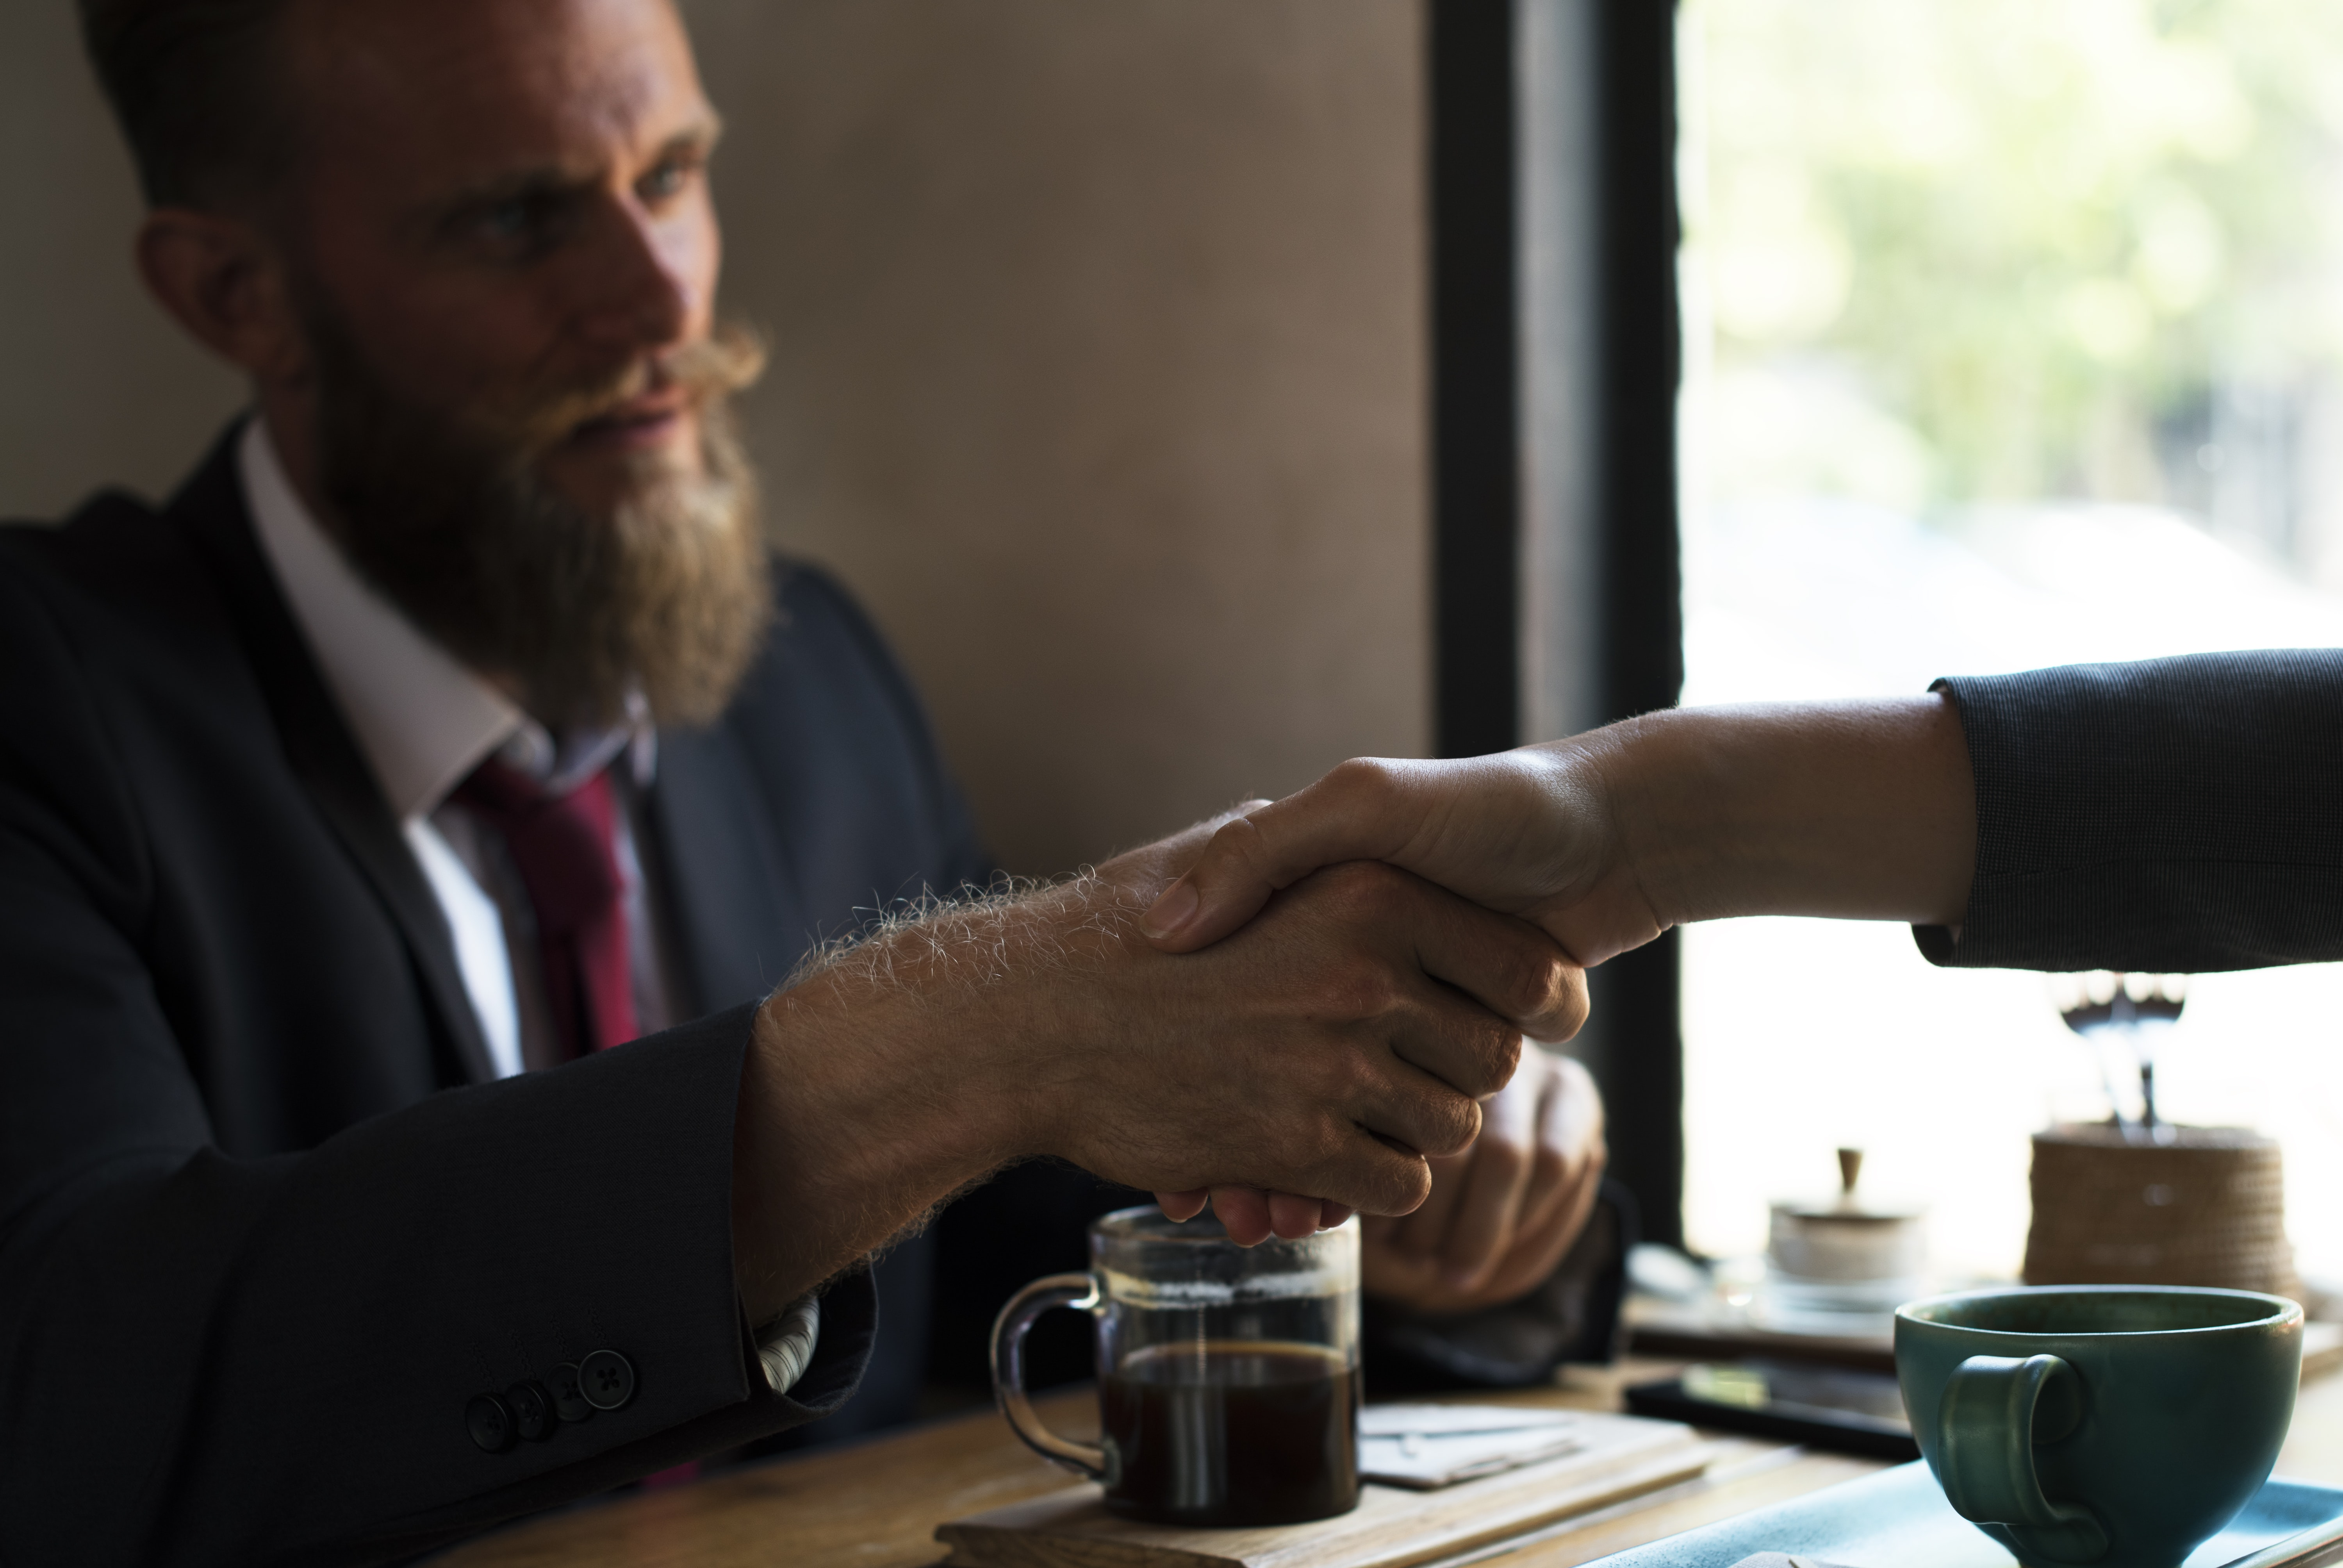 A bearded man having dinner with another person, shaking hands over the table.